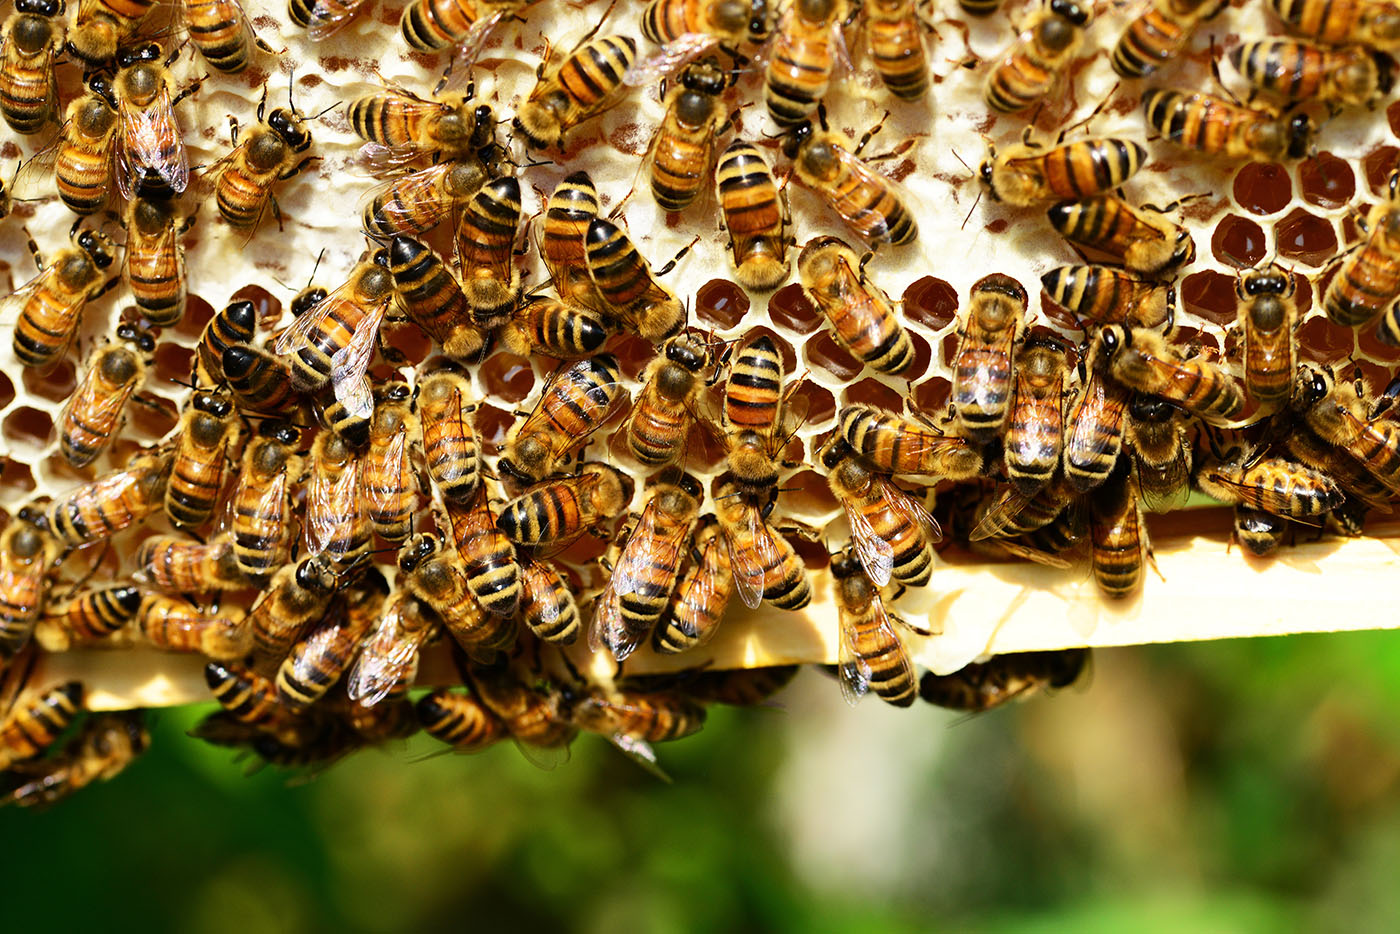 New technologies are being developed to protect beehives from theft, parasites and illnesses without the use of chemicals.